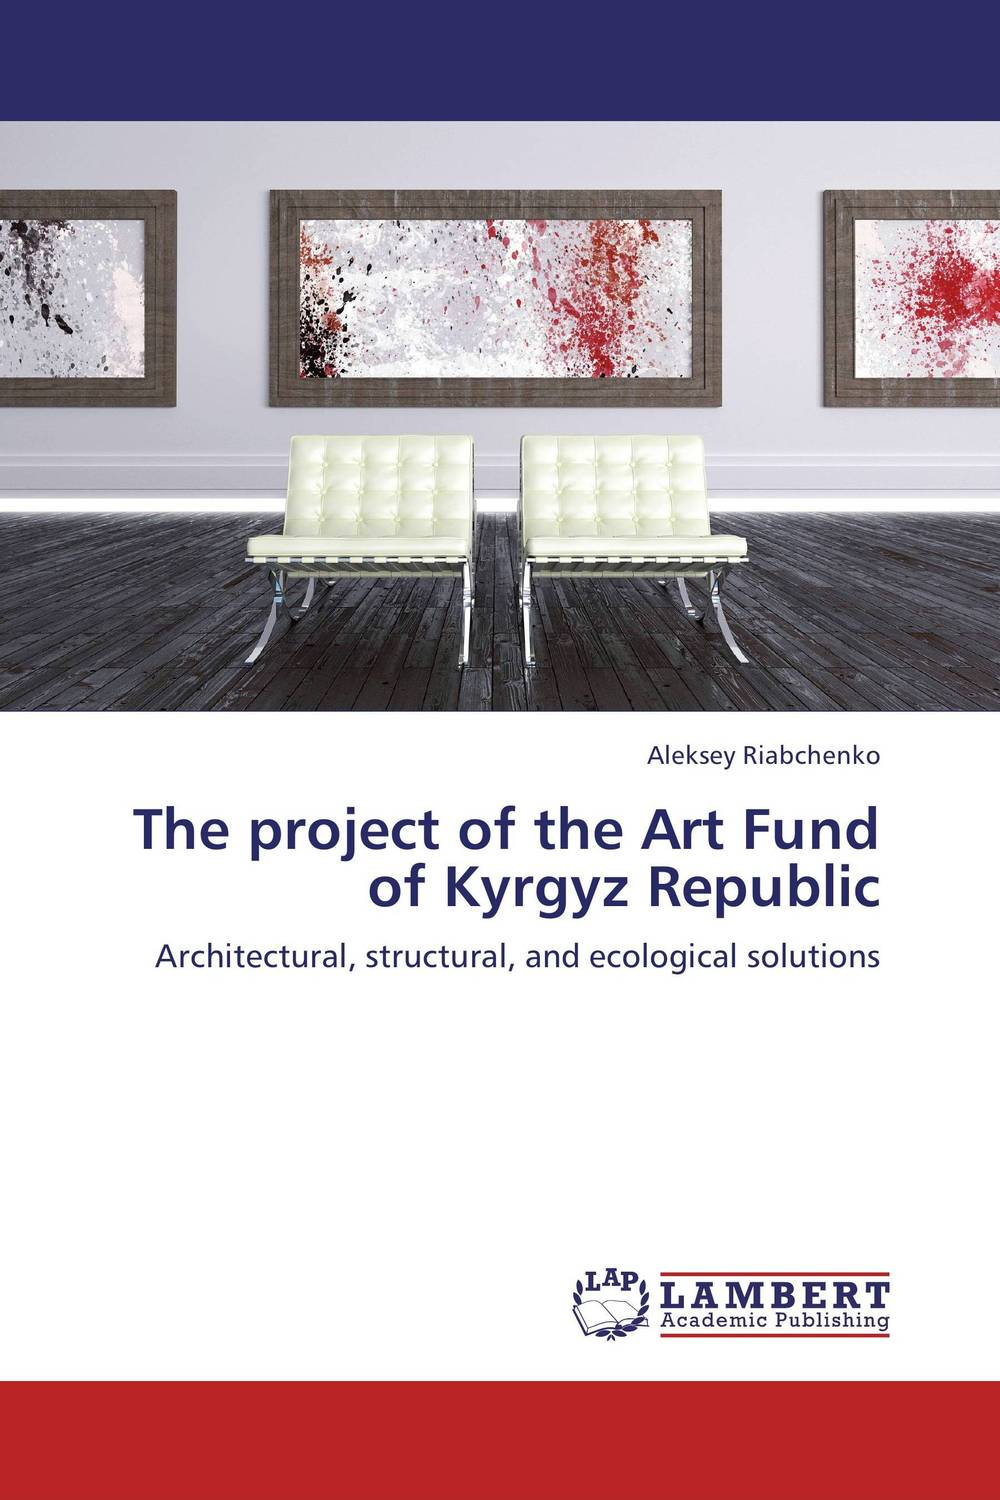 The project of the Art Fund of Kyrgyz Republic affair of state an